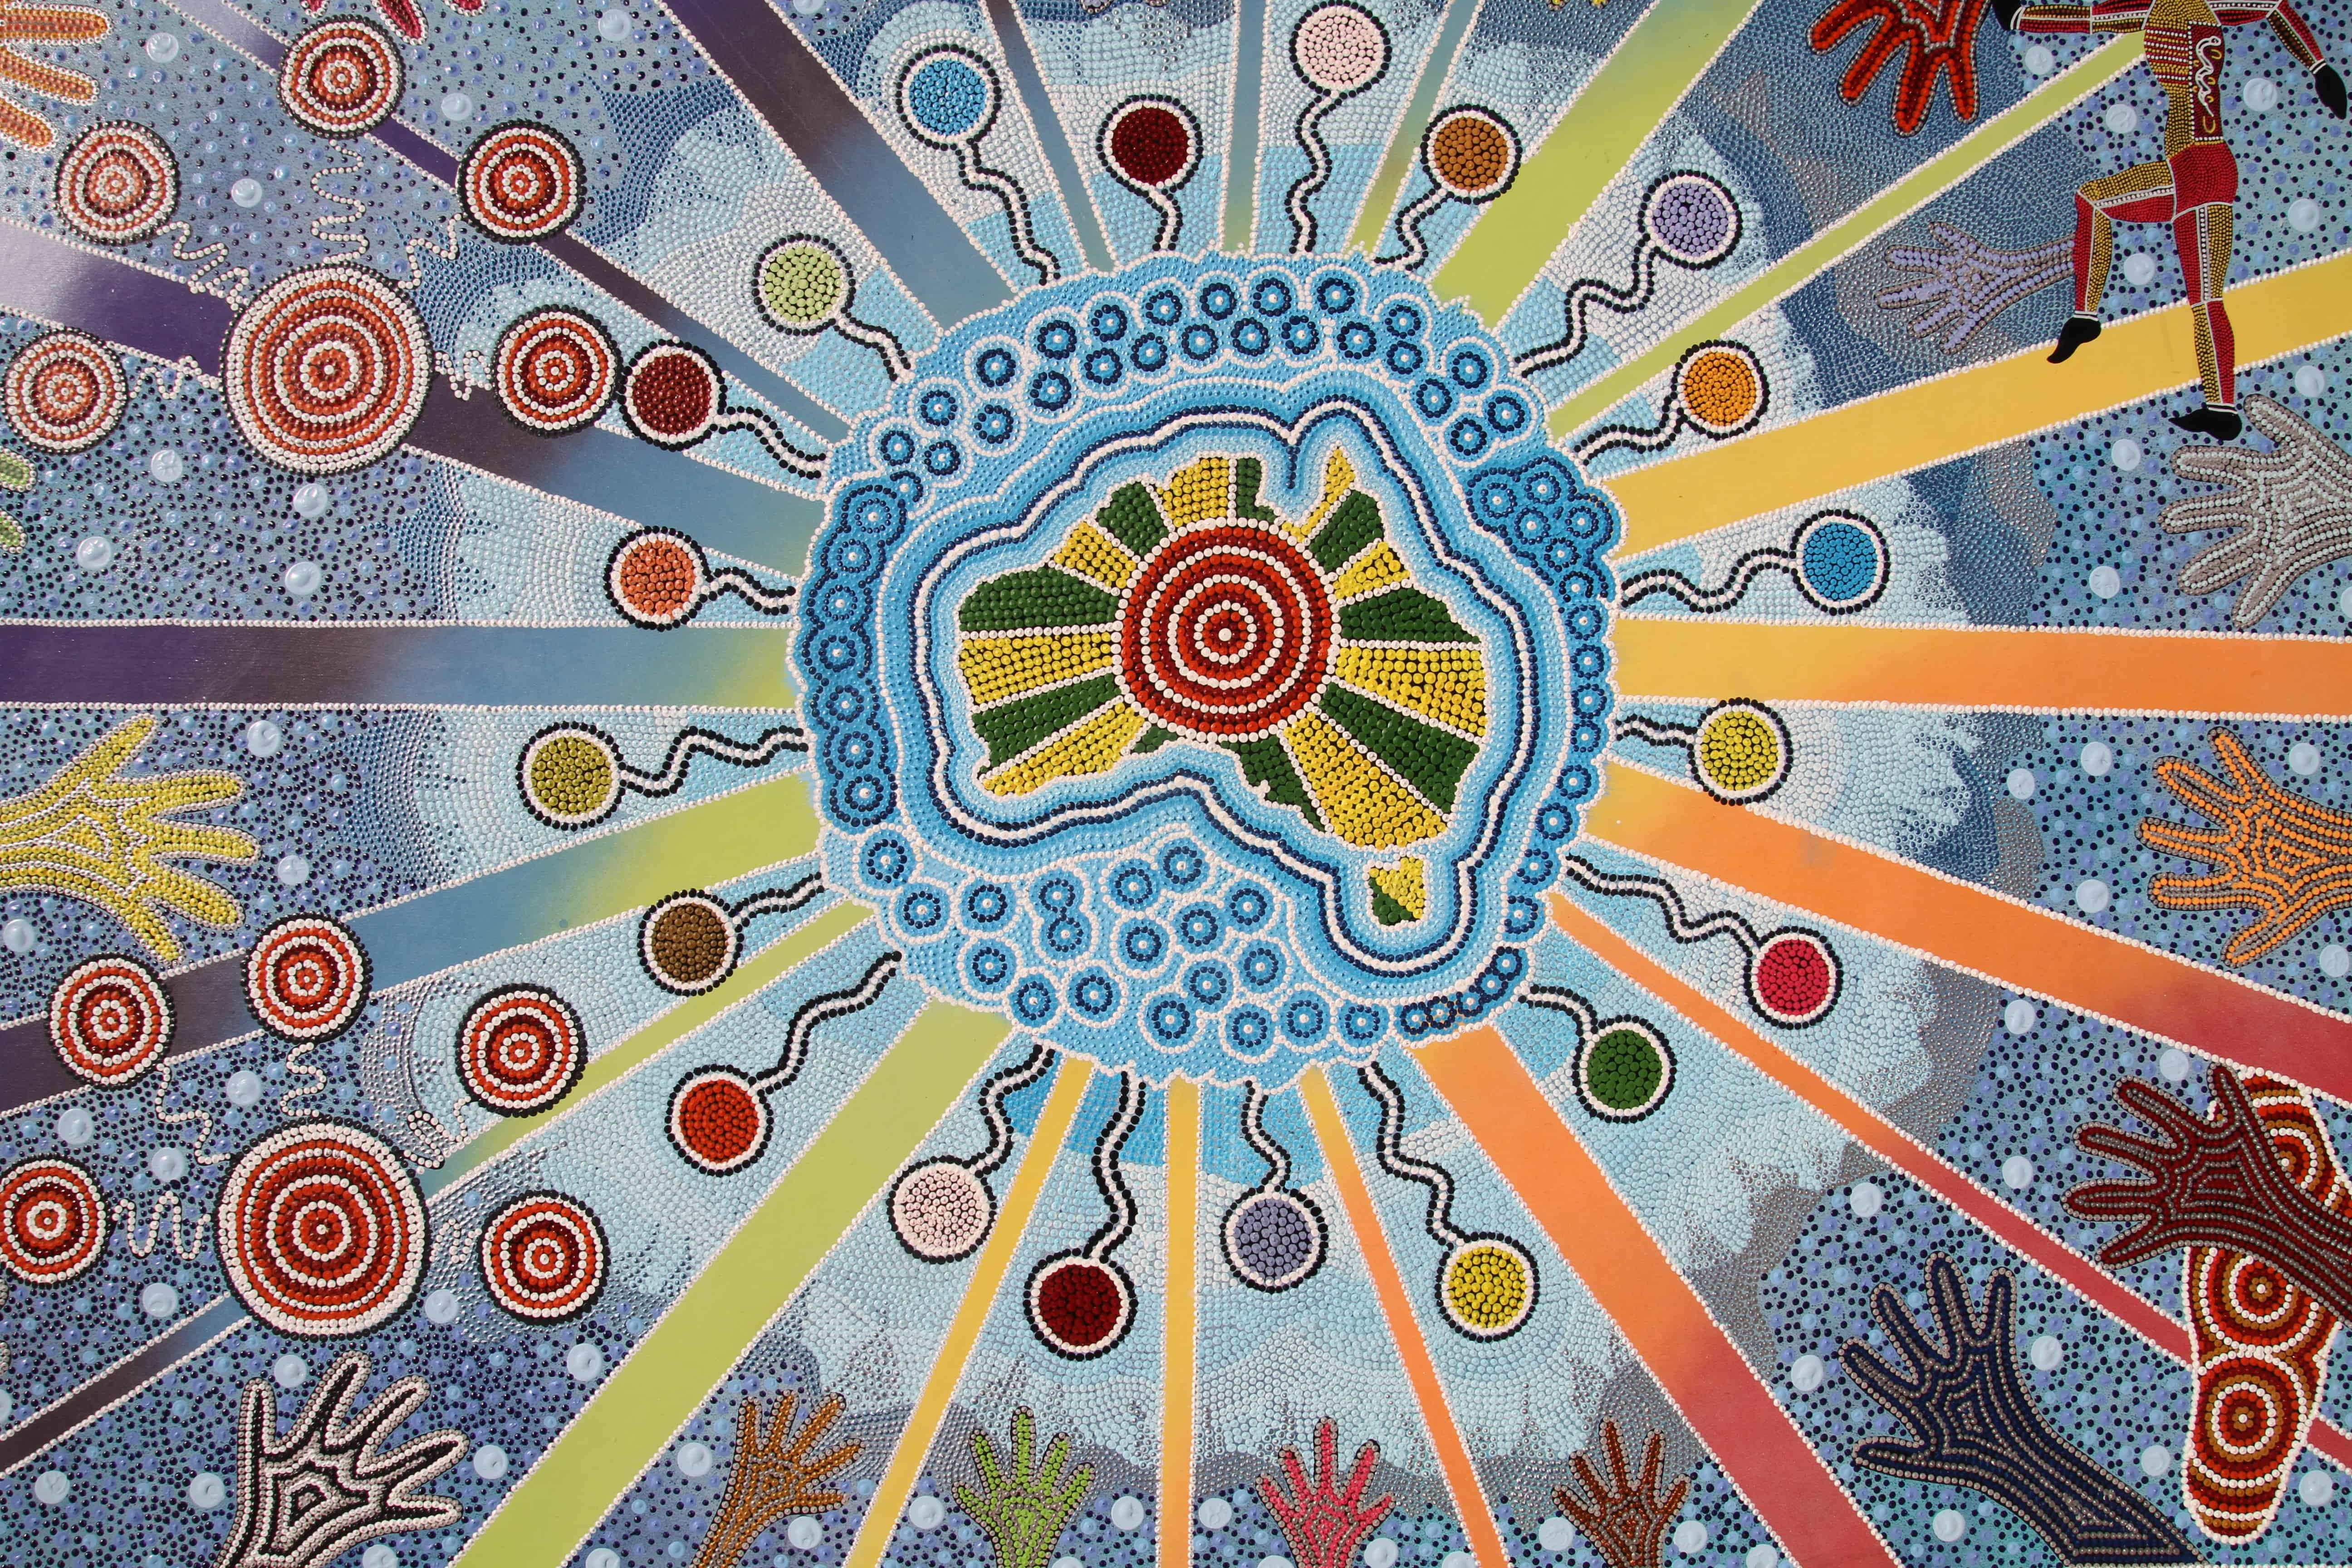 Aboriginal Art - David Dunn